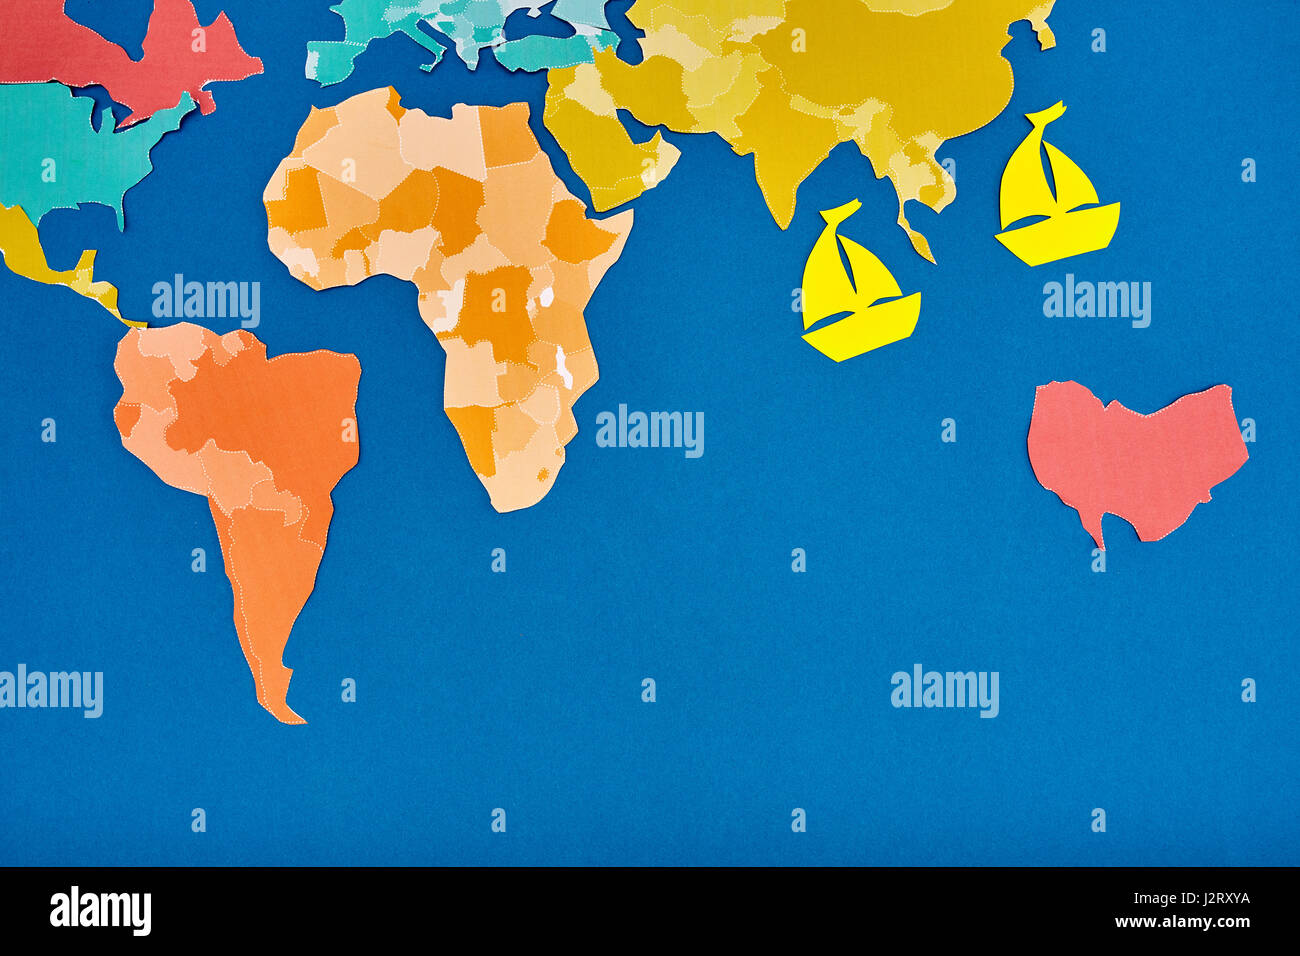 World map and two ships cut out of colored paper based on blue stock world map and two ships cut out of colored paper based on blue applique and handmade continents and oceans trip around the world concept of the tr gumiabroncs Image collections